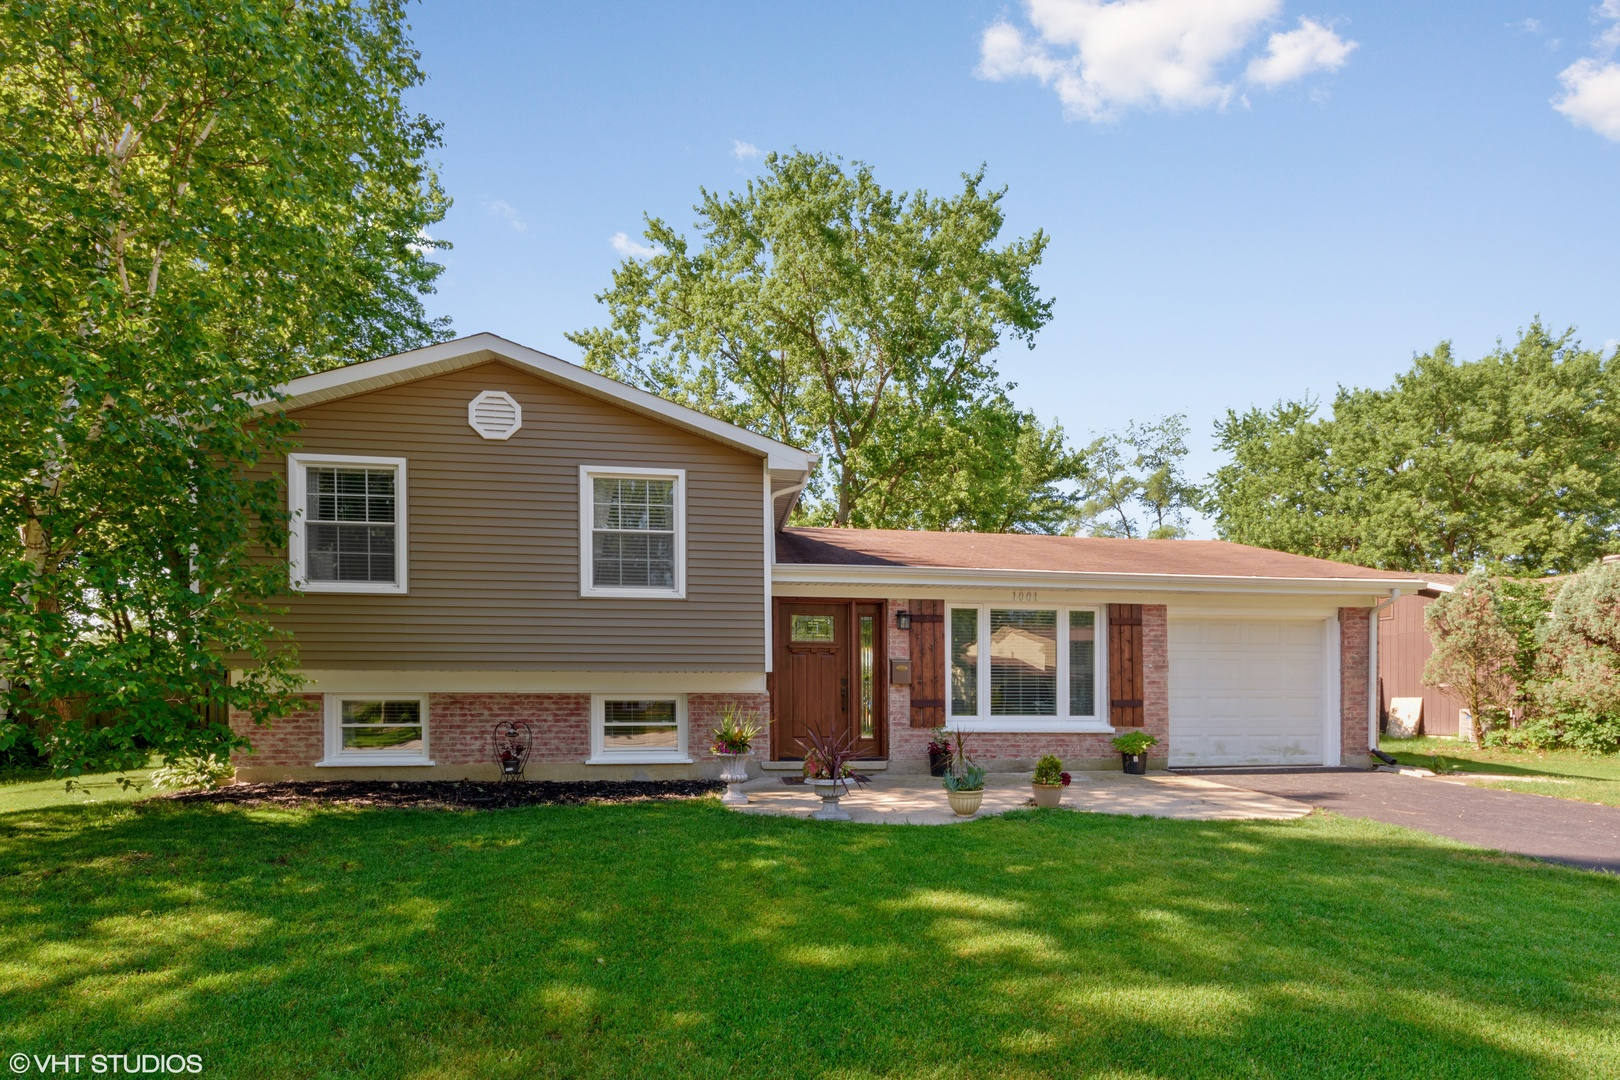 1001 Heartwood Lane, Lake Zurich, Illinois 60047